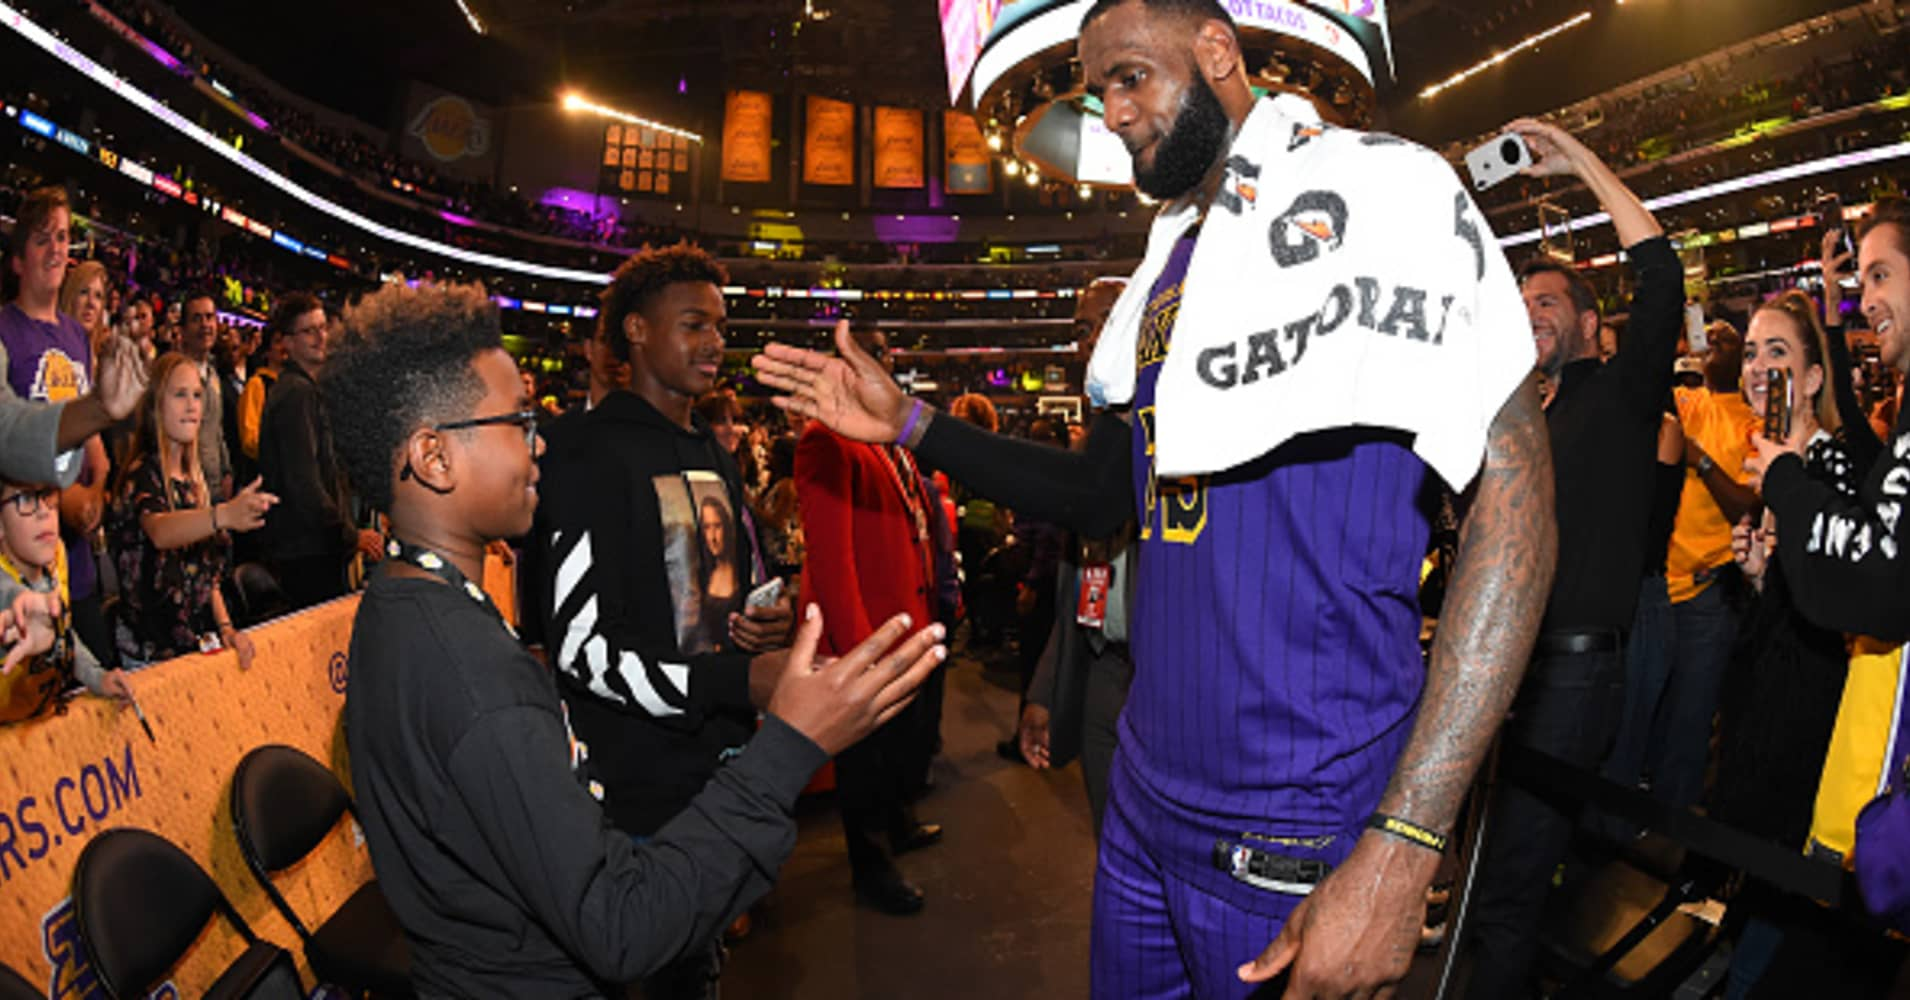 LeBron James #23 of the Los Angeles Lakers is seen shaking hands with his sons Bryce Maximus James and LeBron James Jr. after winning the game against the Utah Jazz on November 23, 2018 at STAPLES Center in Los Angeles, California.